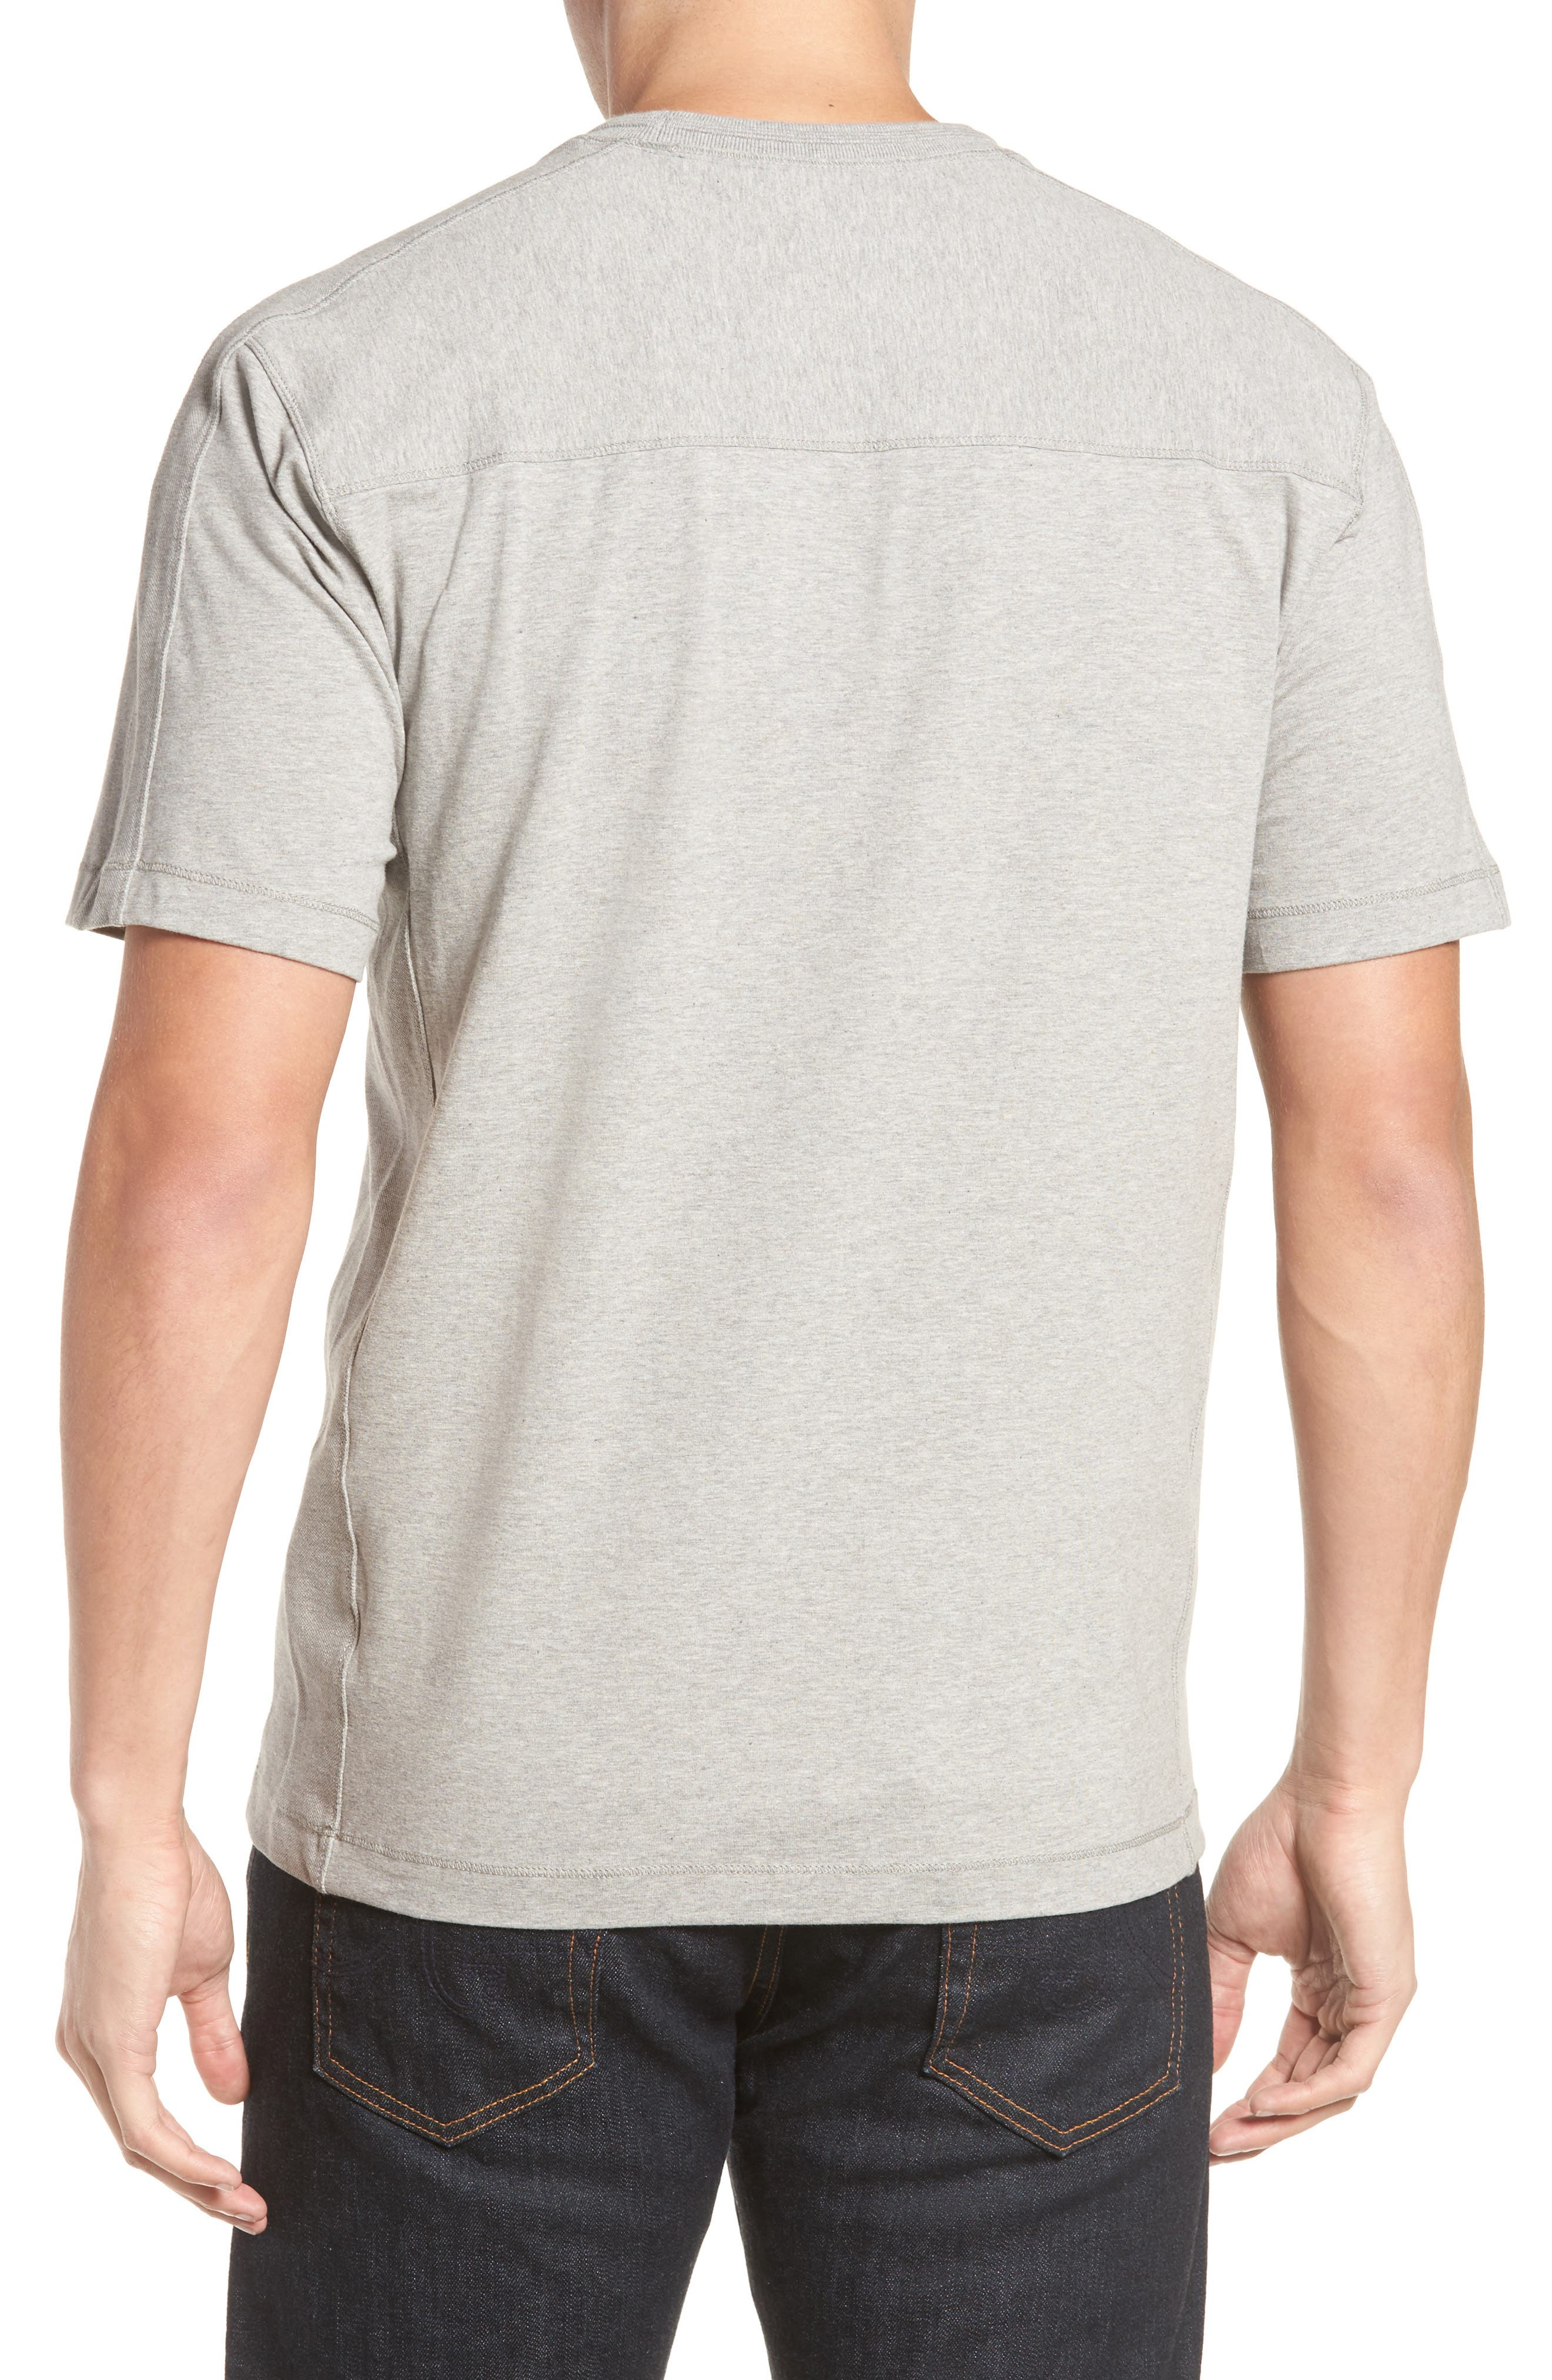 Steve Stretch Jersey T-Shirt,                             Alternate thumbnail 5, color,